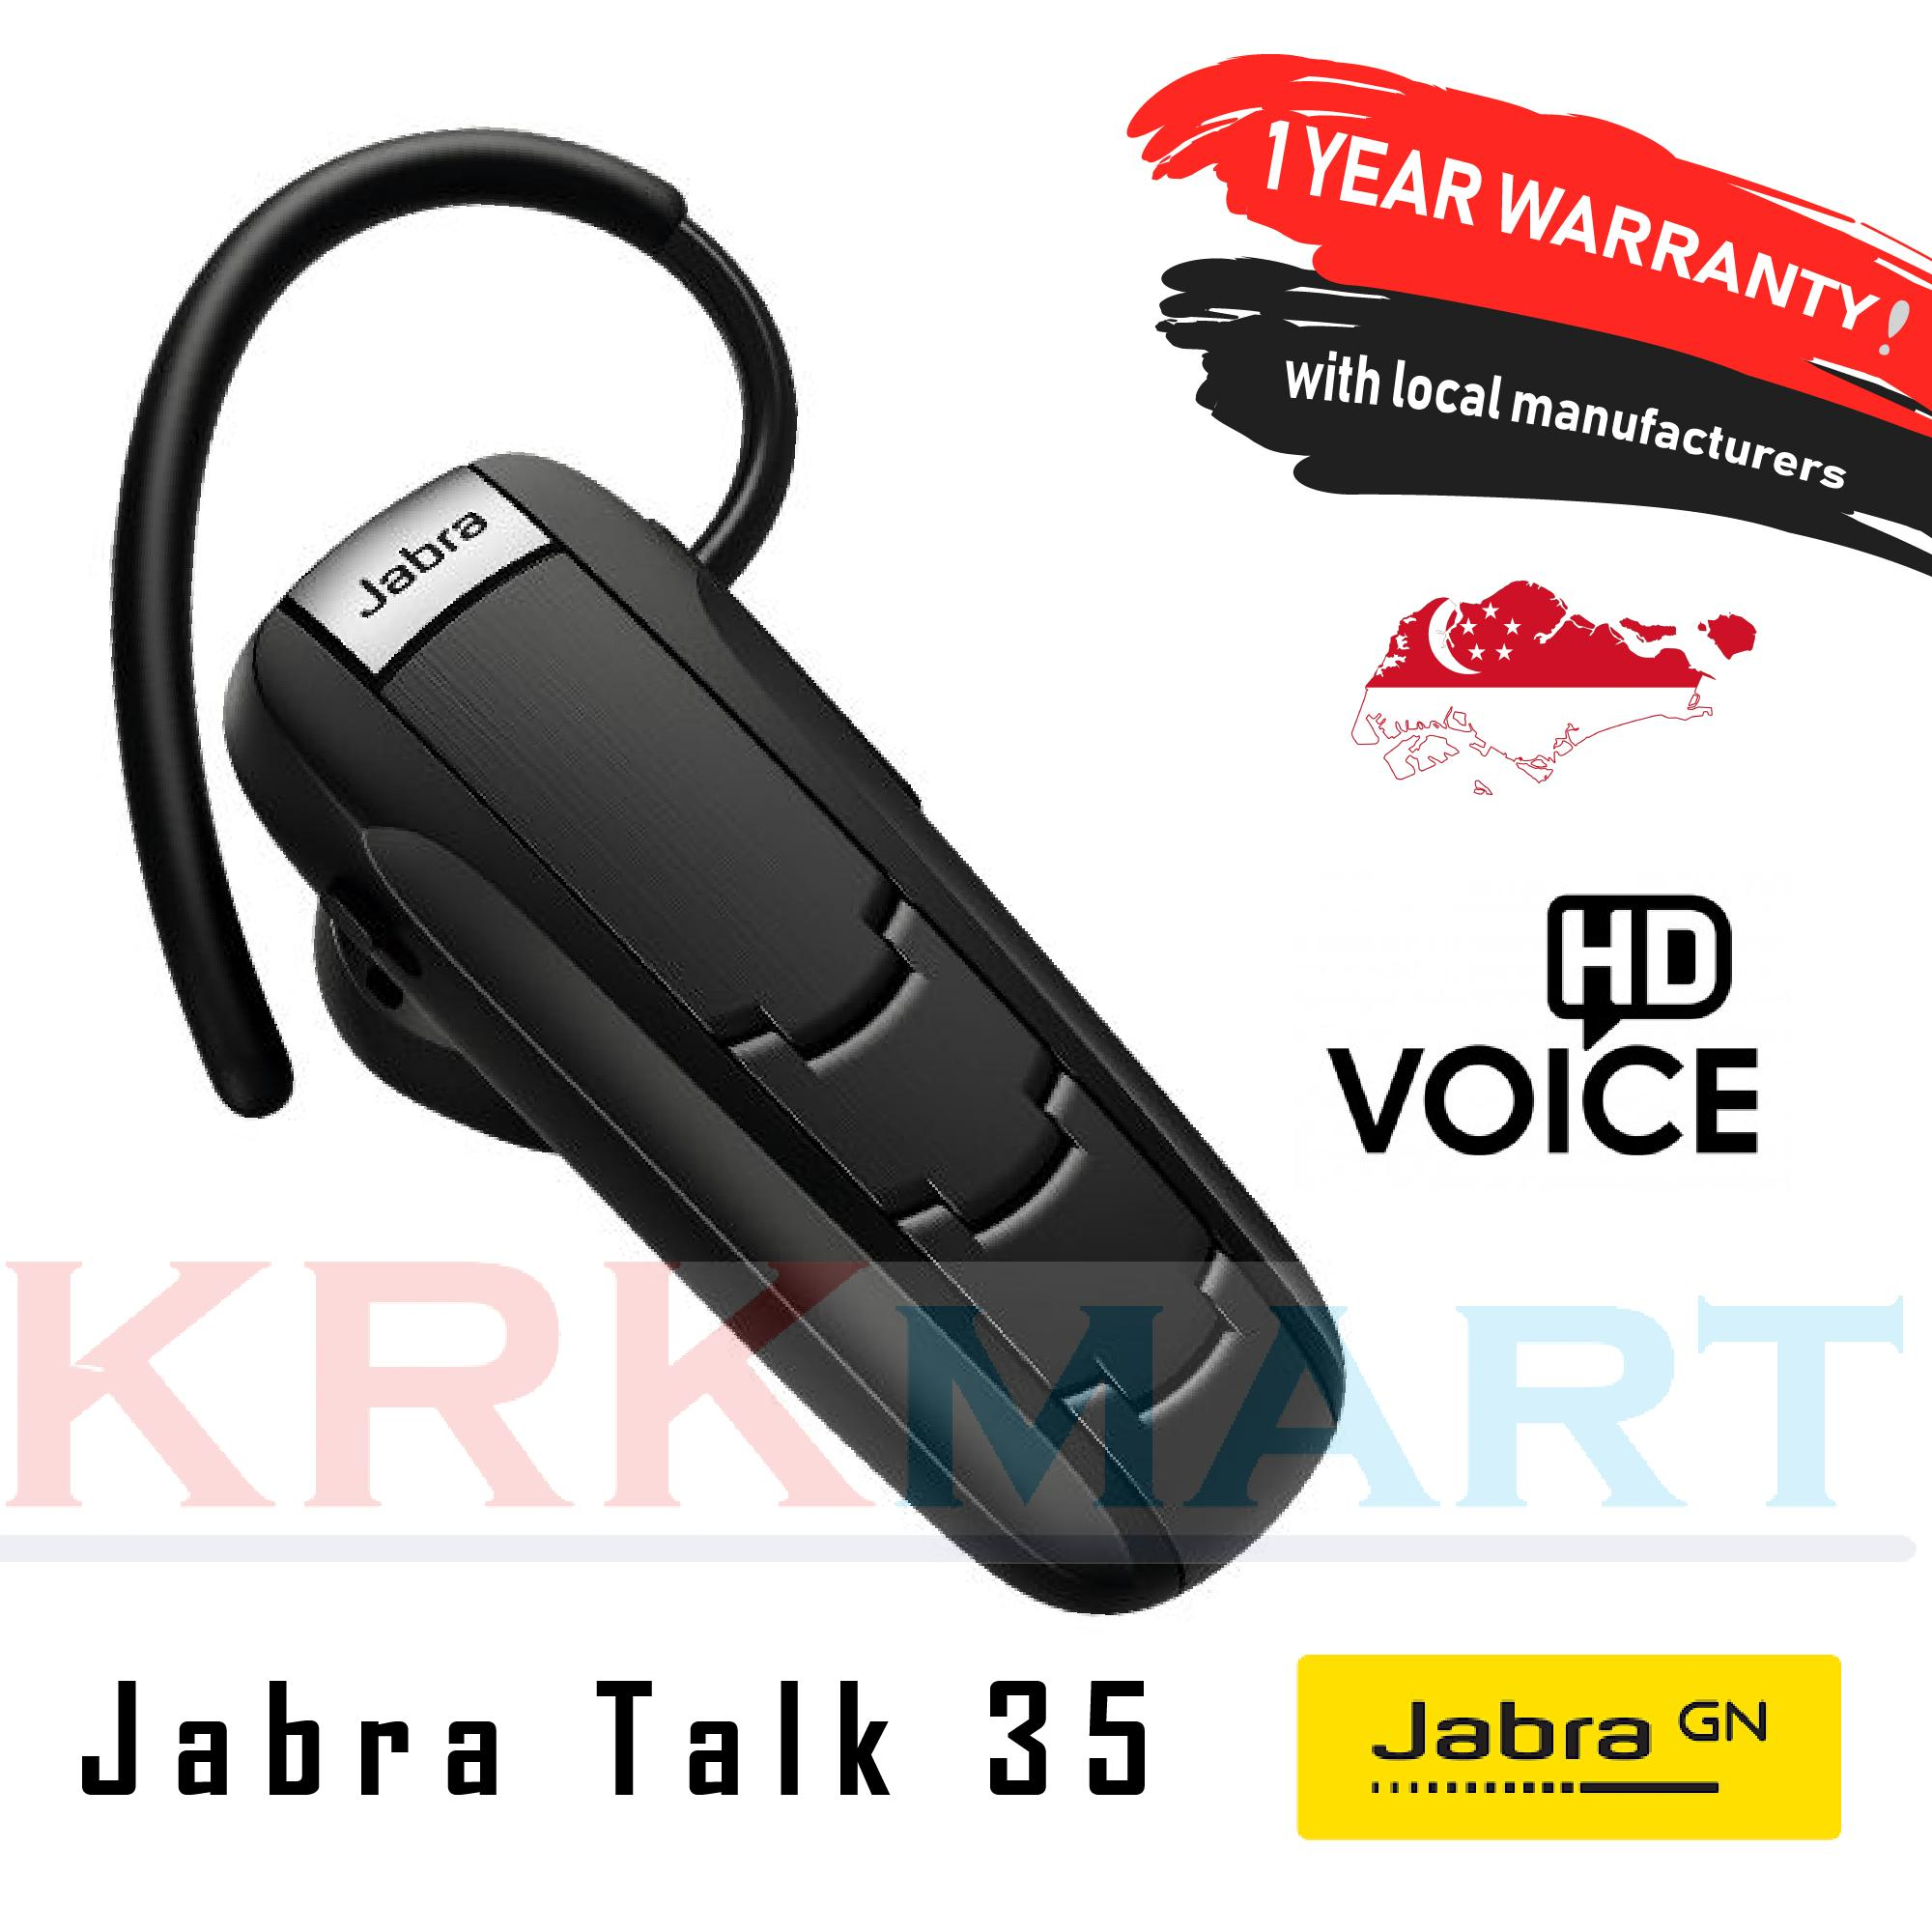 19a0993411b Singapore. Jabra Talk 35 Bluetooth Wireless Headphone (Local Manufacturer  Warranty - 1 Year)